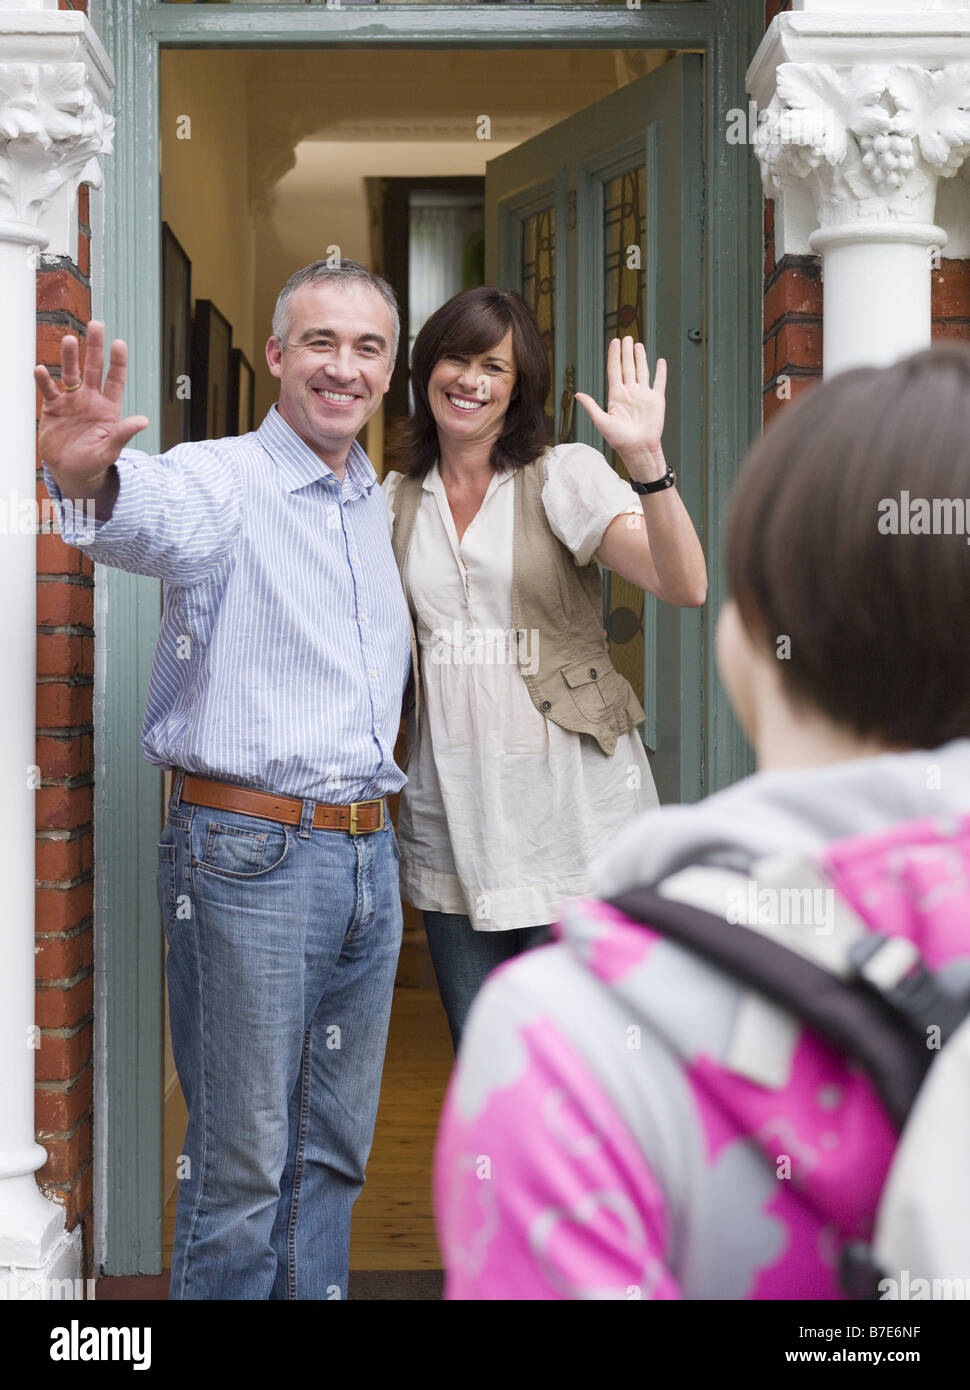 Parents greeting their daughter - Stock Image